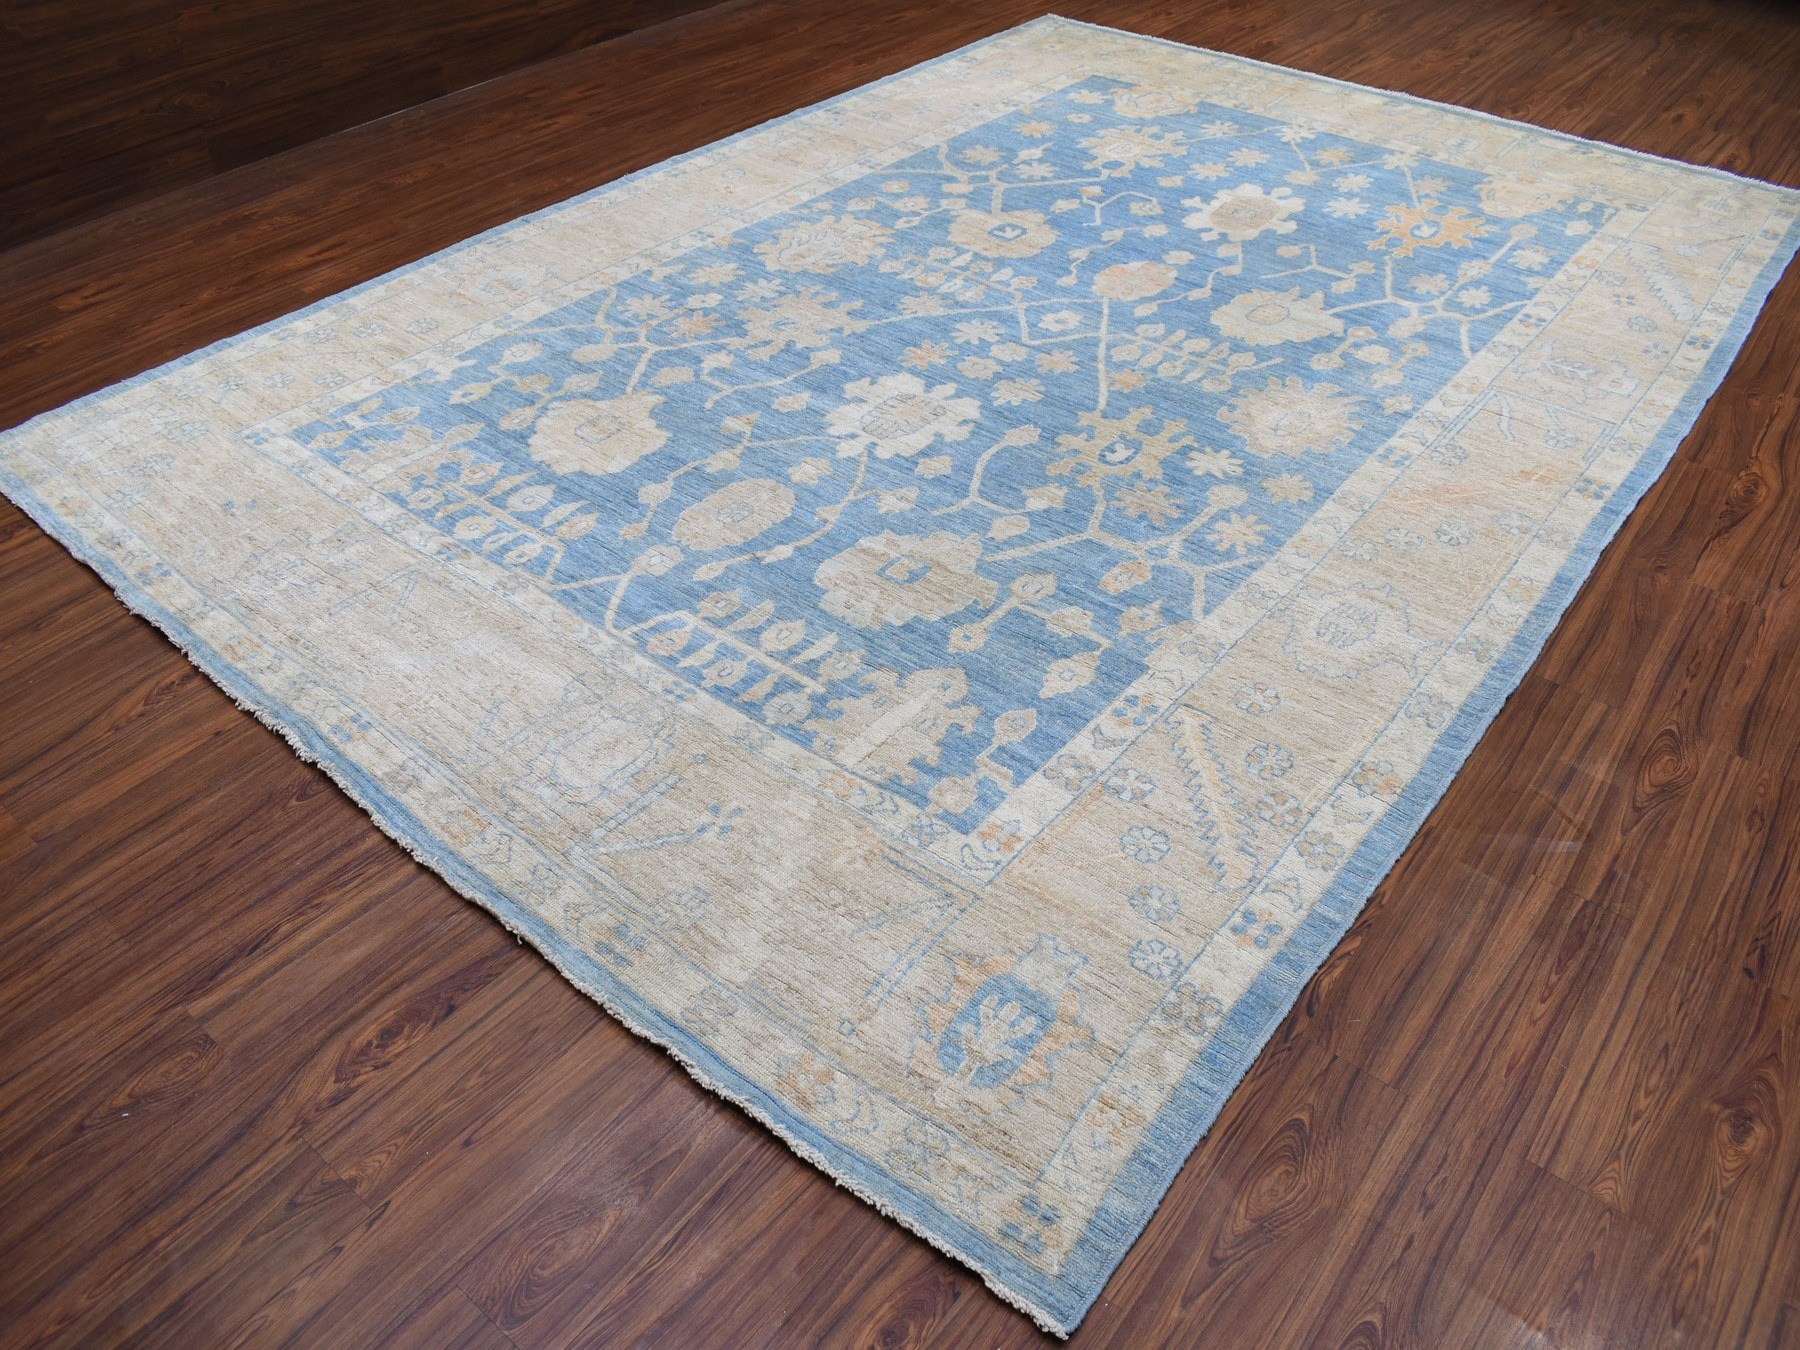 Transitional Wool Hand-Knotted Area Rug 9'9